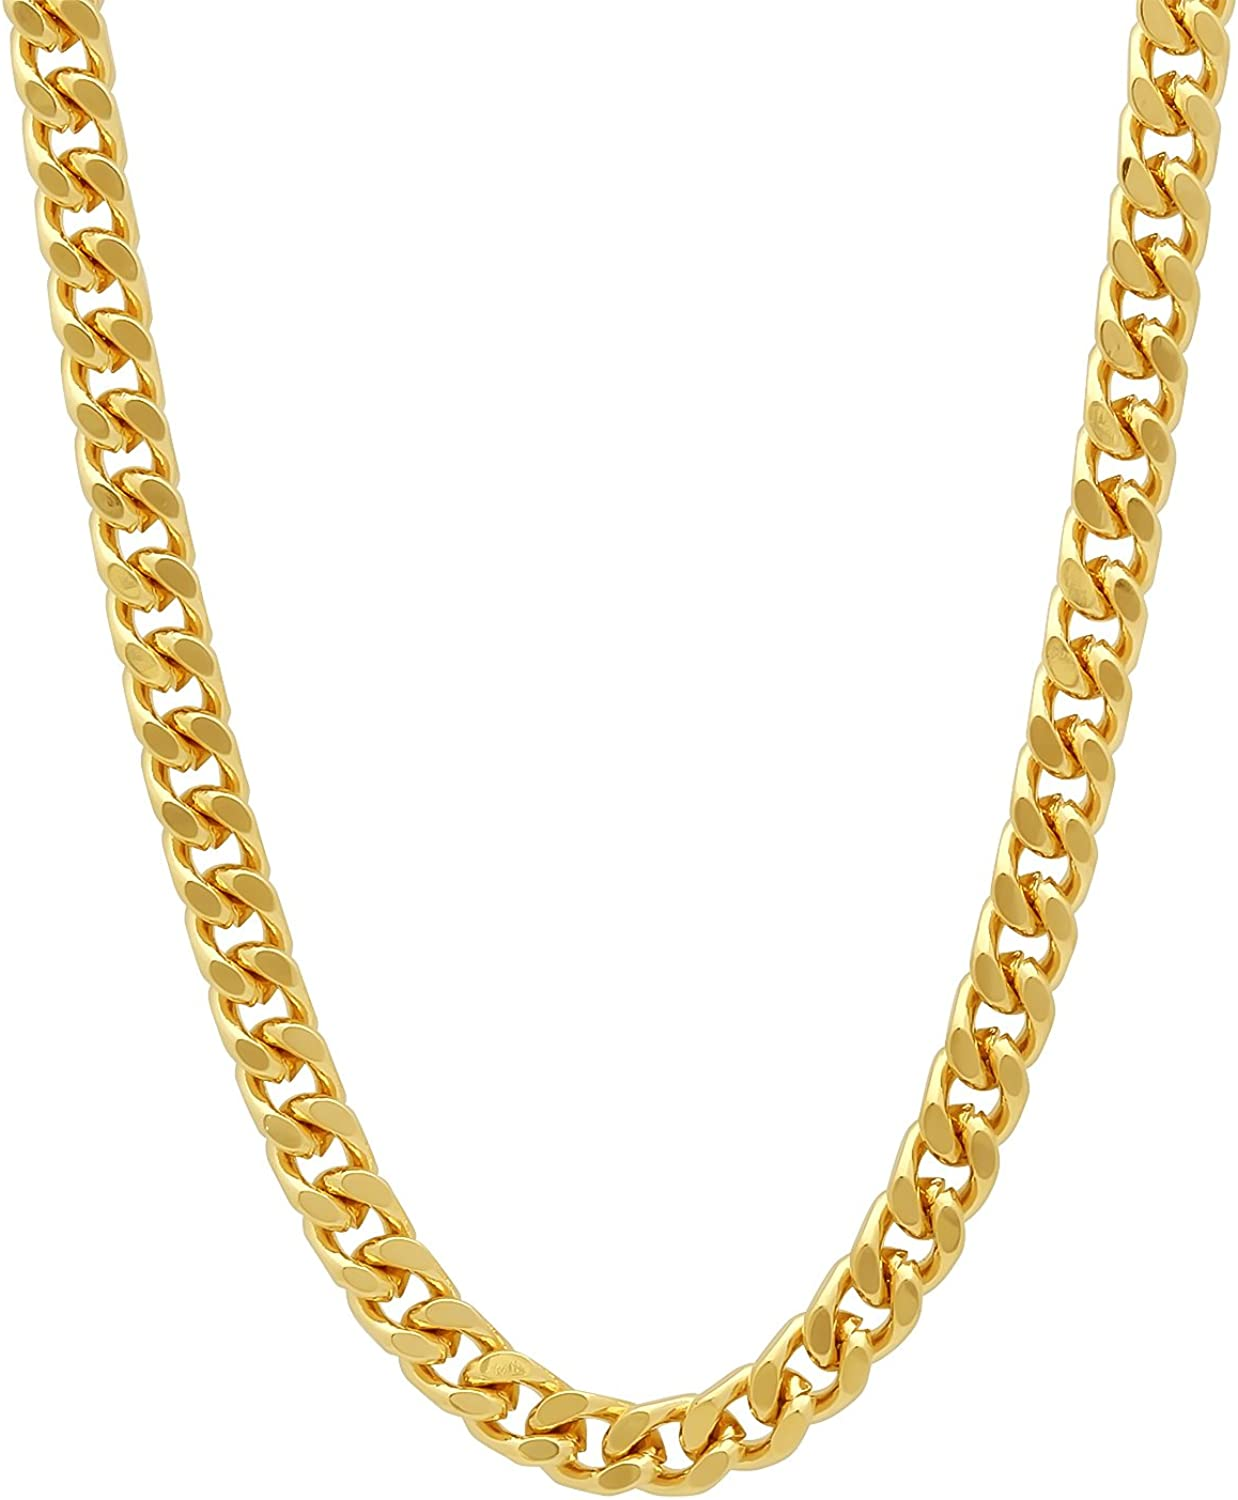 The Bling Factory 5mm 0.25 mils (6 microns) 14k Yellow Gold Plated Beveled Curb Chain Necklace, 7'-30 + Jewelry Cloth & Pouch